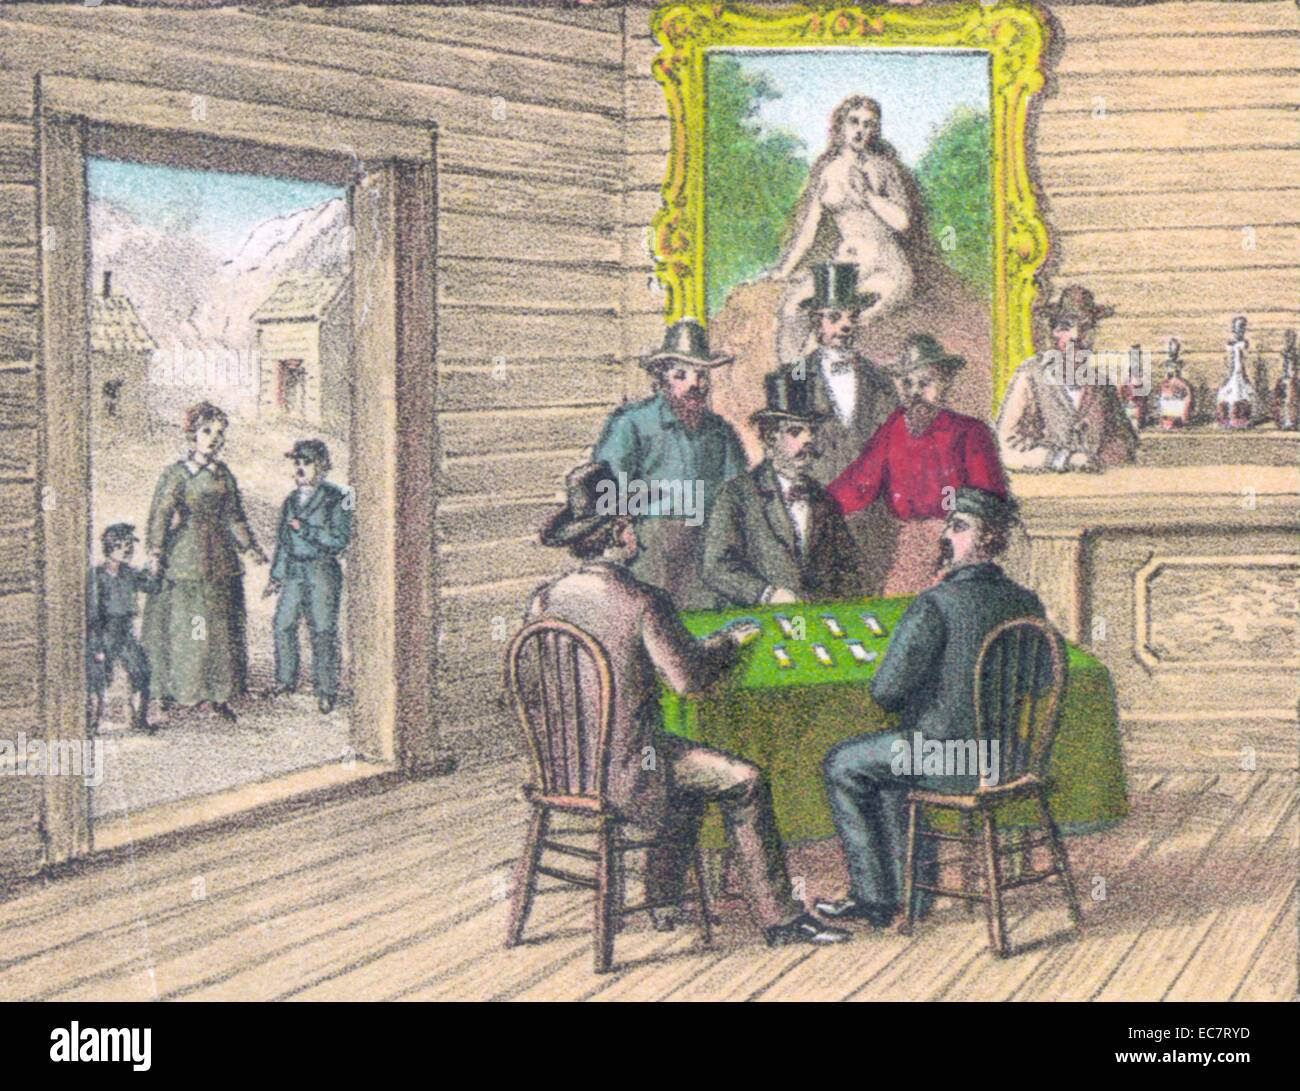 American Wild West saloon, showing a group of men playing cards 1849 - Stock Image